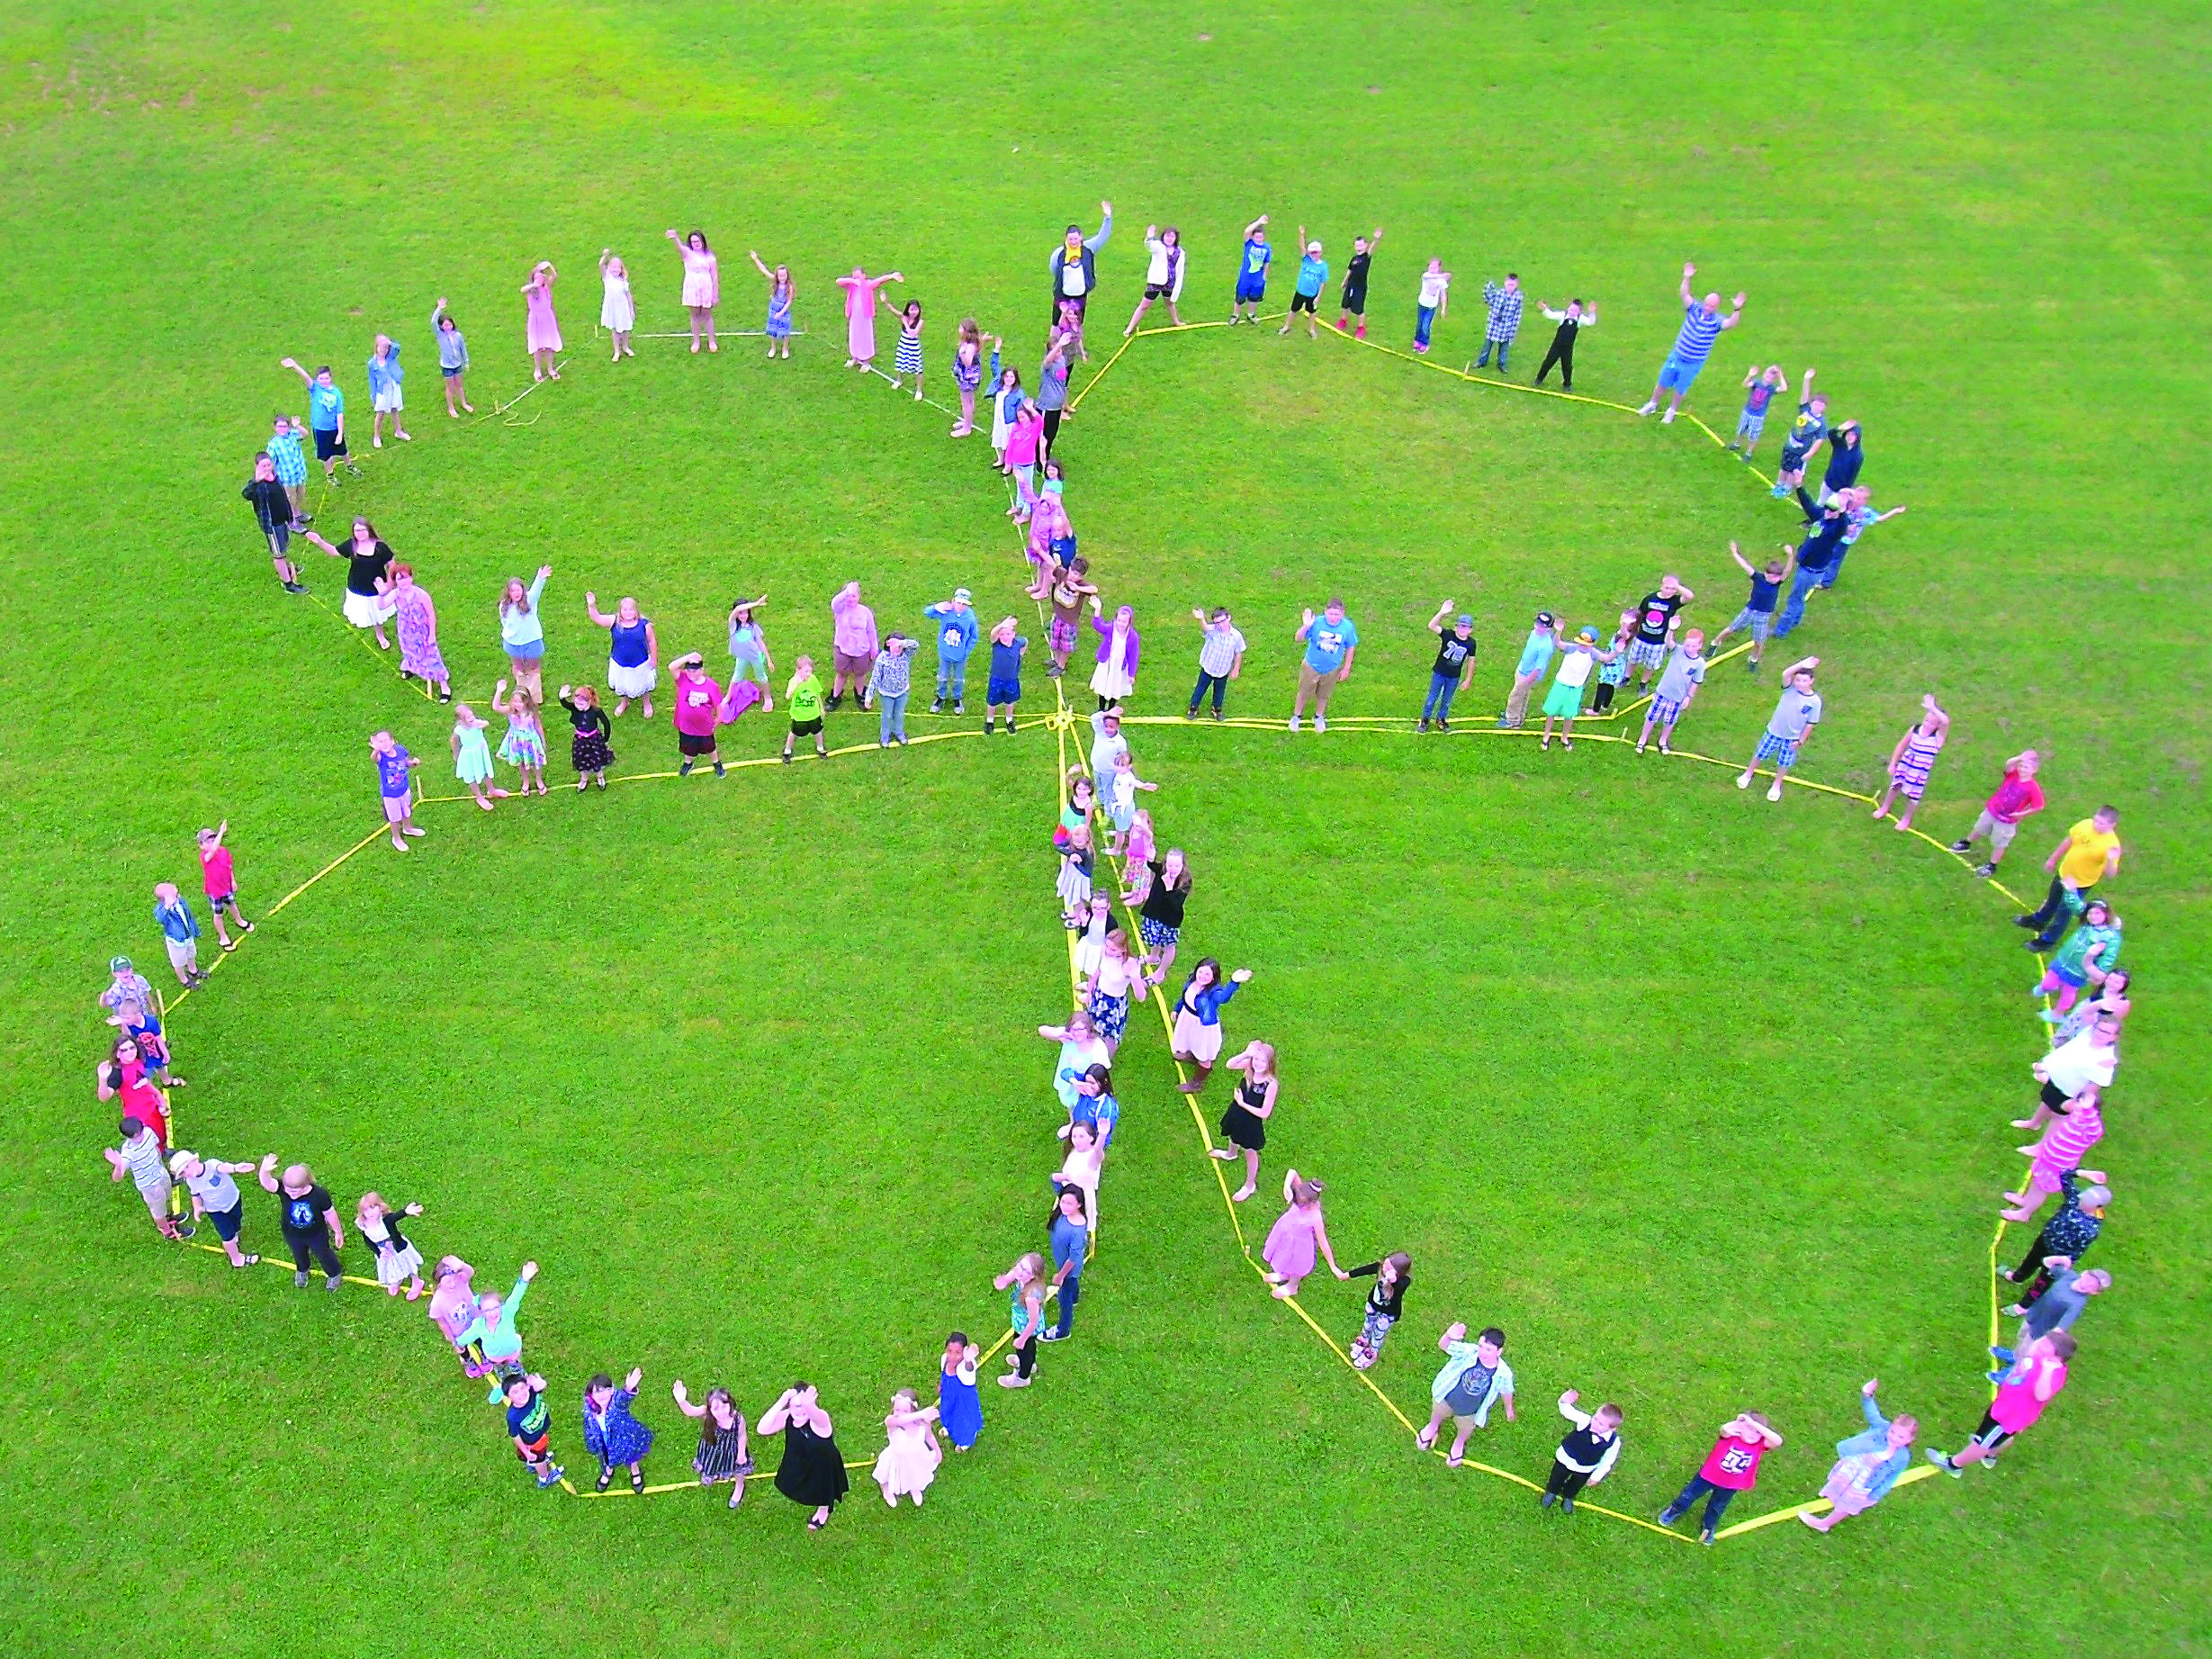 Students at a local elementary school helped Country View 4-H Club members form a giant human clover. (Submitted photo)